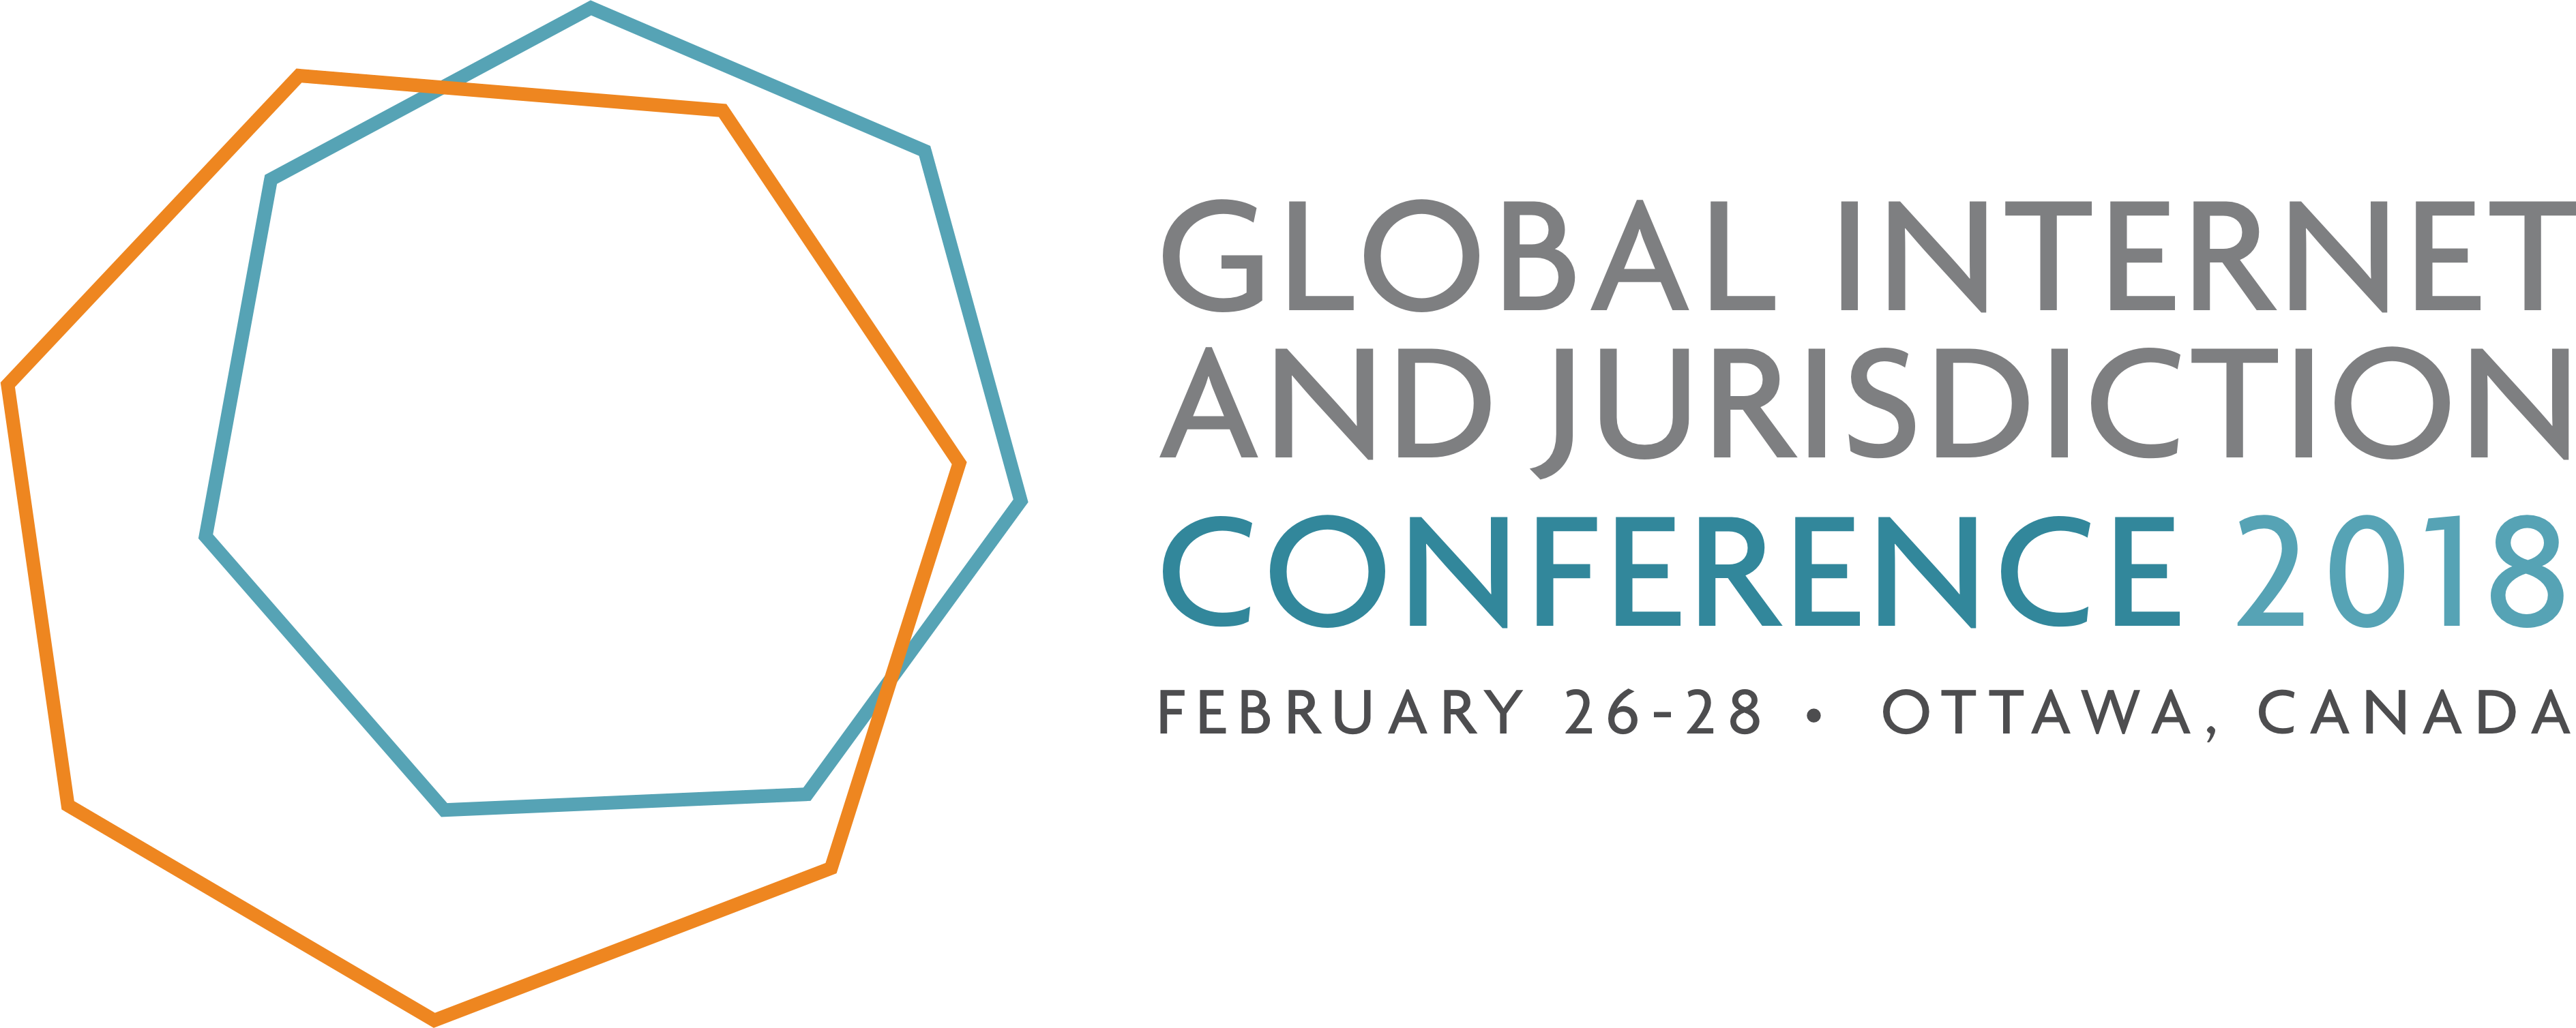 2018 Global Internet and Jurisdiction Conference